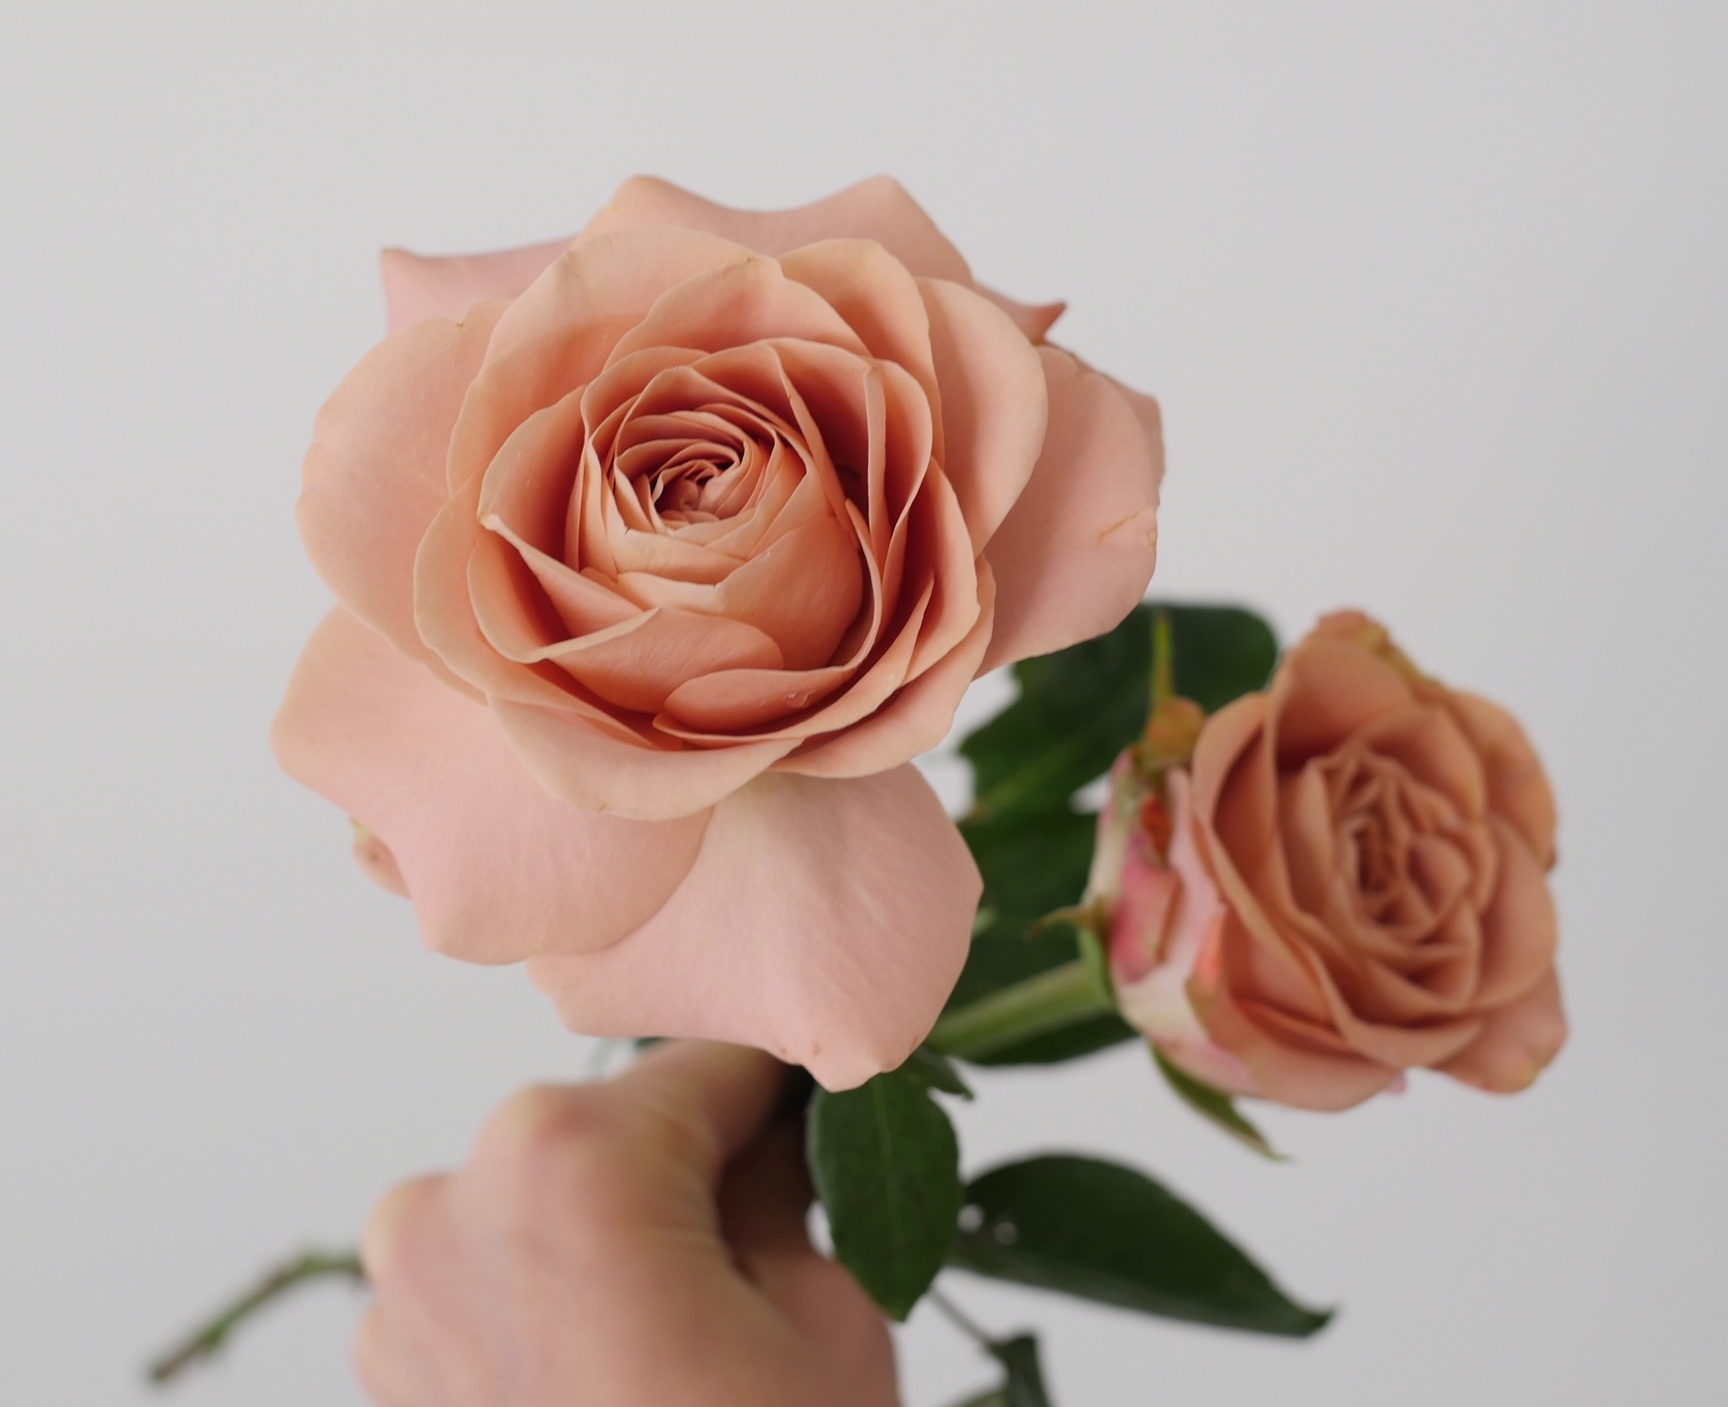 CAPPUCCINO ROSES - These terra cotta-colored blooms are quite simply one of our favorites, thrown in the mix as often as possible. A leading lady and luminary of our botanical repertoire. Not only do they have a unique hue, difficult to find in any other bloom, but they are dependably hardy. Built to last and perfect for wedding design, especially for those summery outdoor weddings!